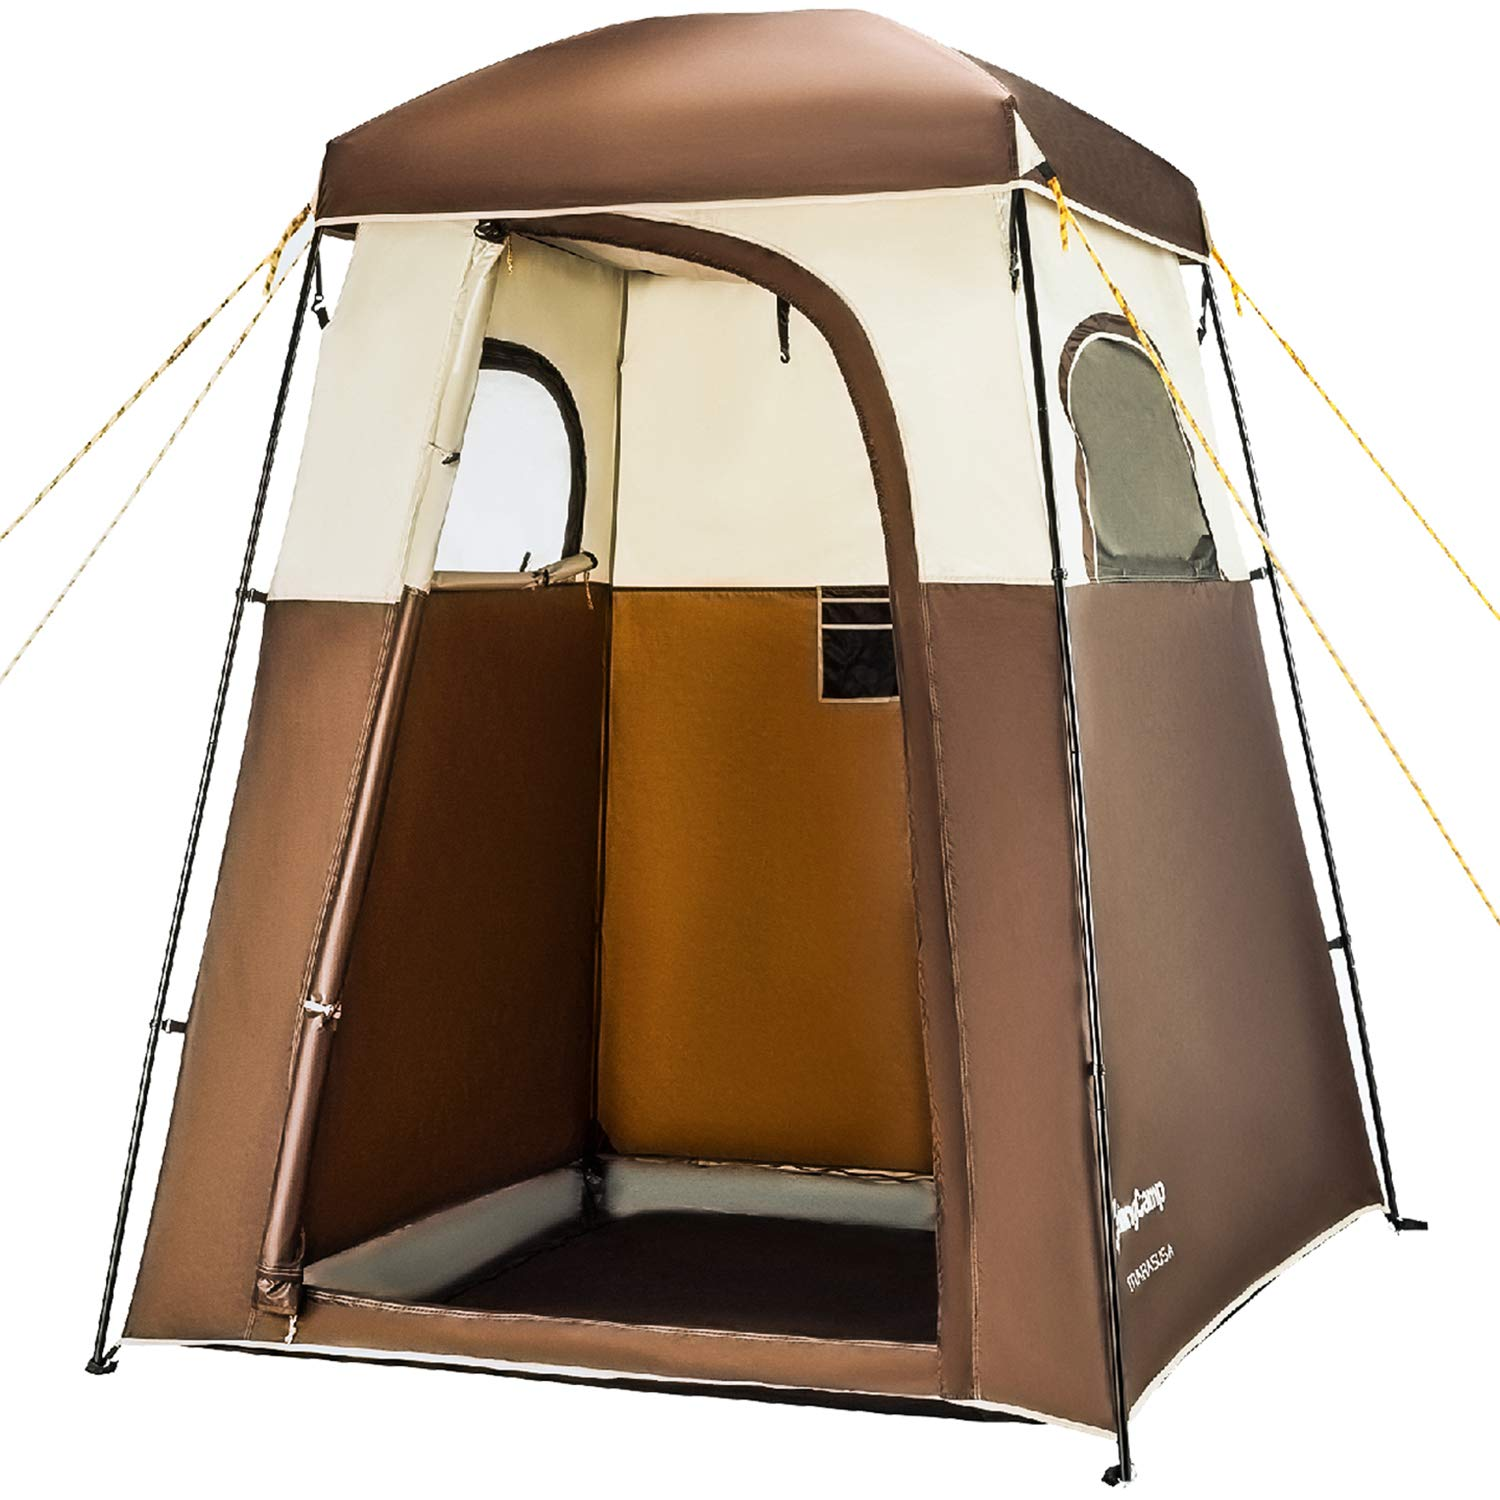 KingCamp Oversize Outdoor Easy Up Portable Dressing Changing Room Shower Privacy Shelter Tent, COFFEE by KingCamp